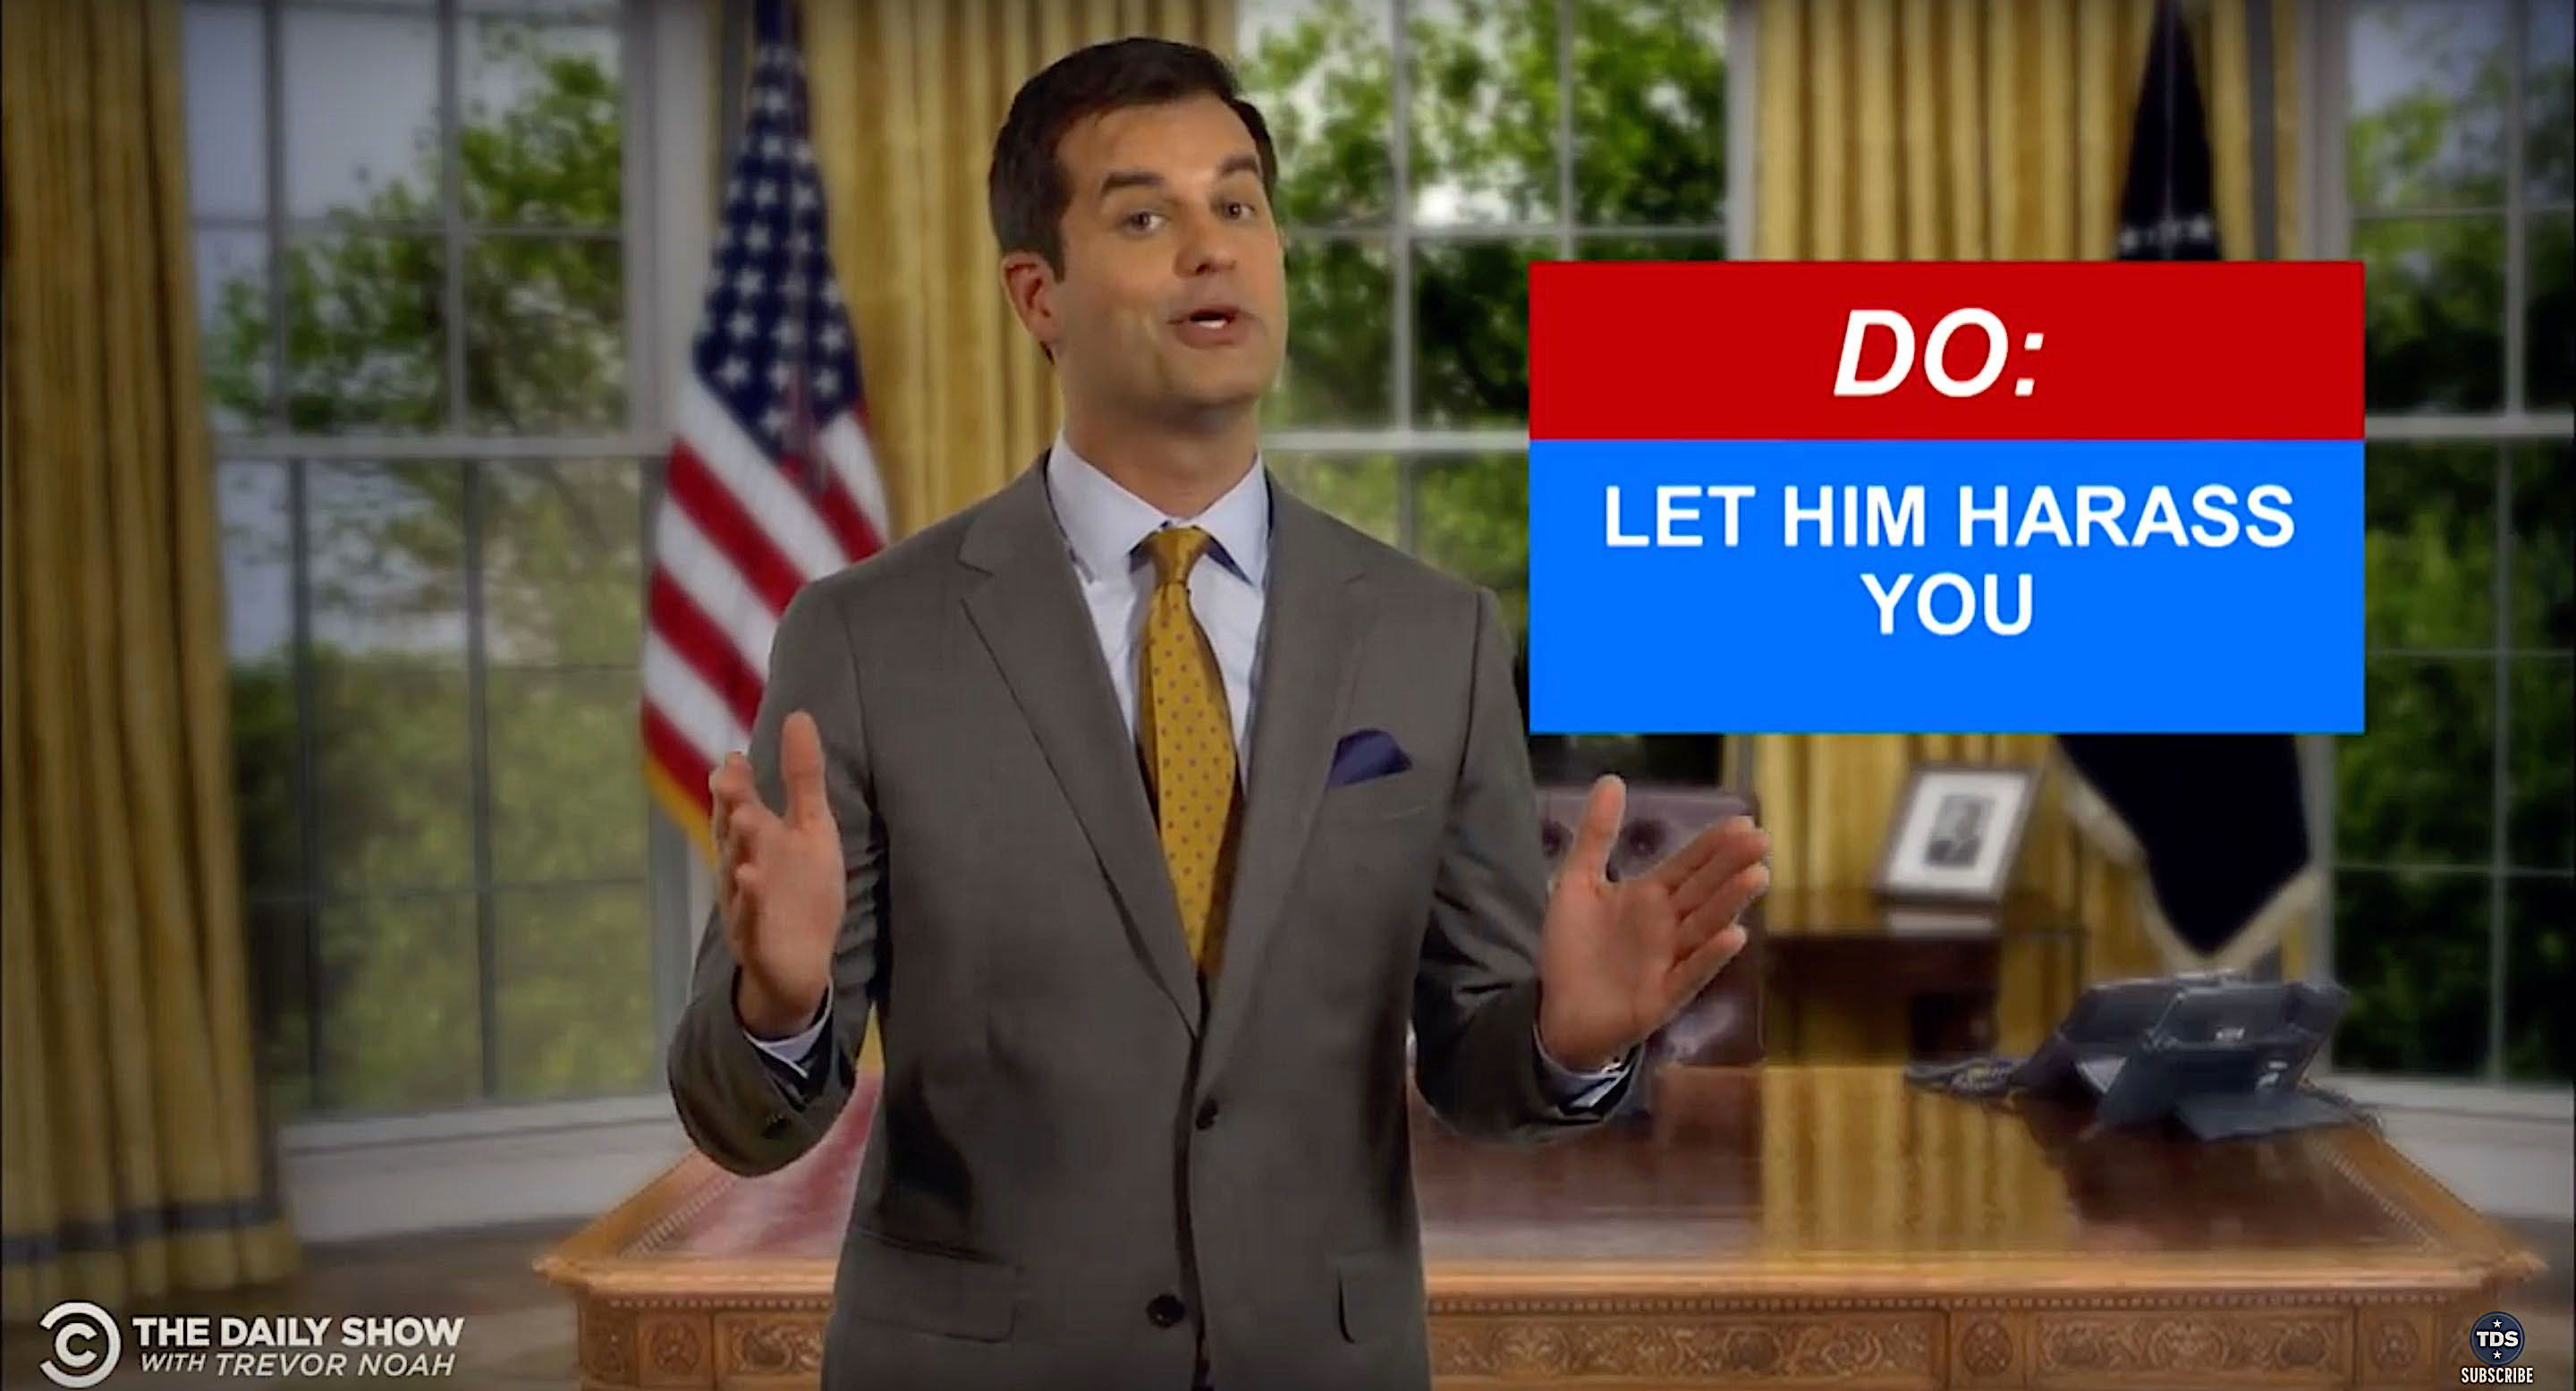 """""""The Daily Show"""" offers some advice on how to avoid harassing the president."""